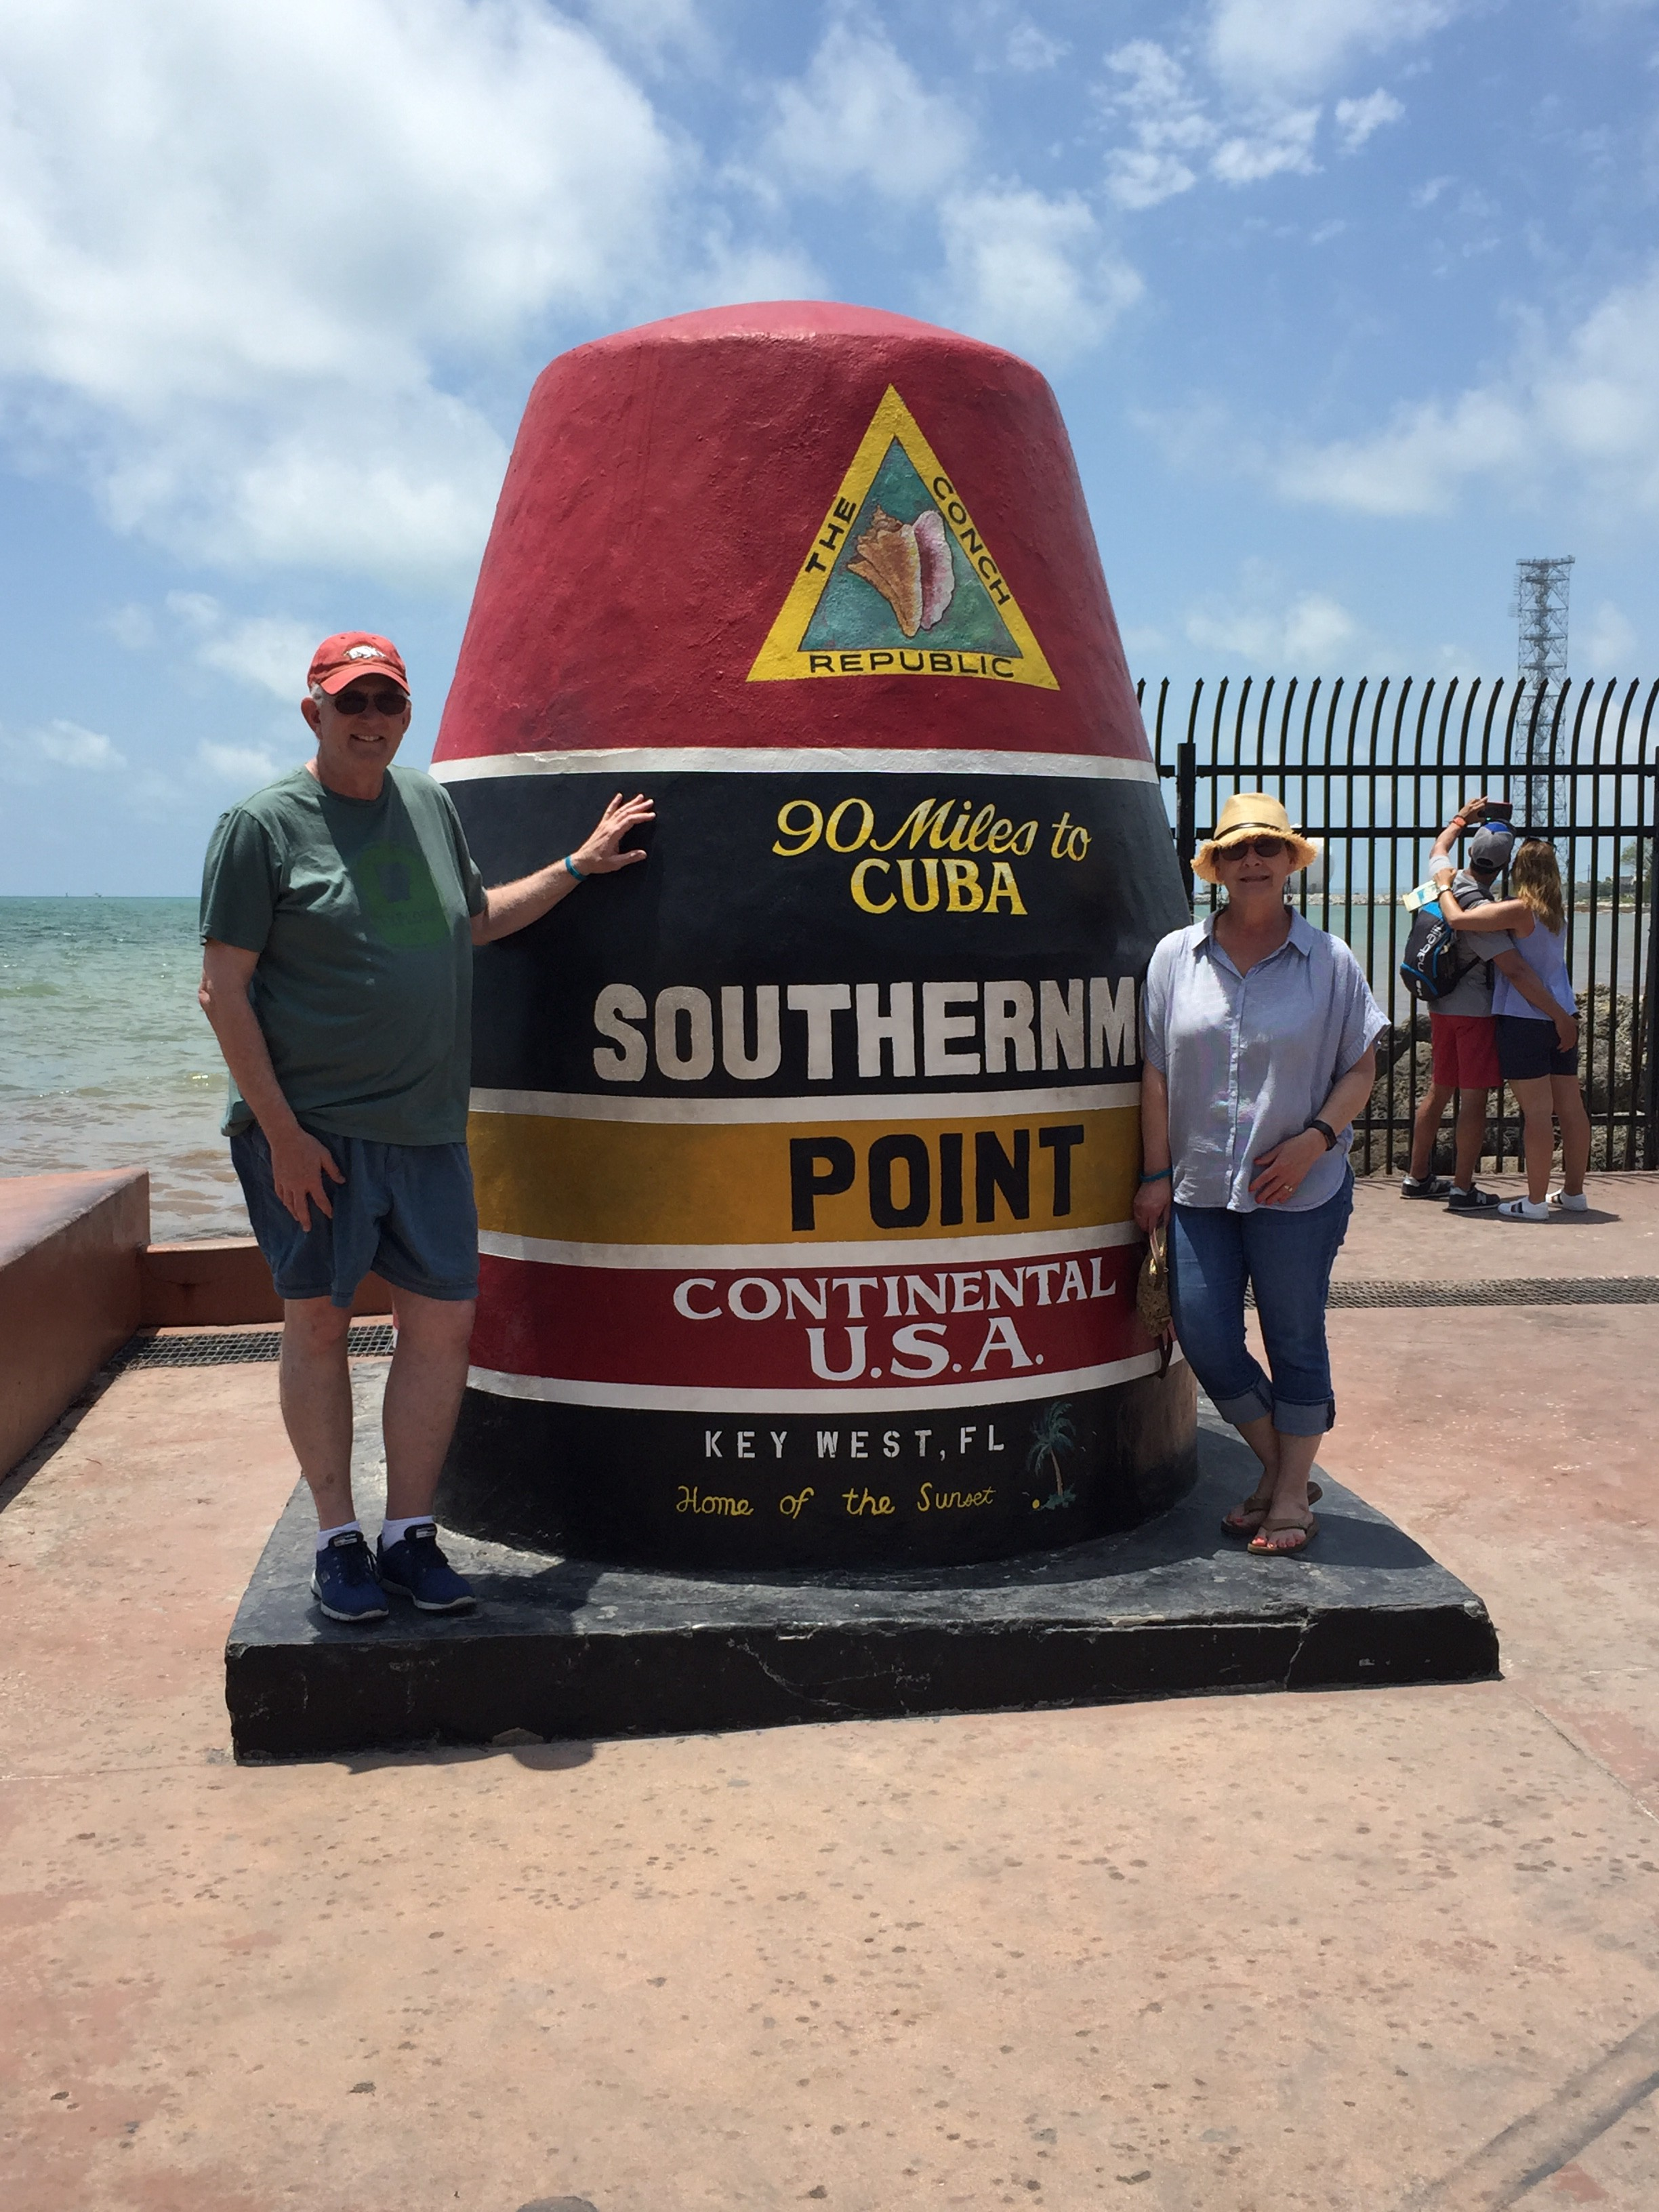 KEY WEST AND 'WHEN PIGS FLY'…. - Travelin' Arkansan